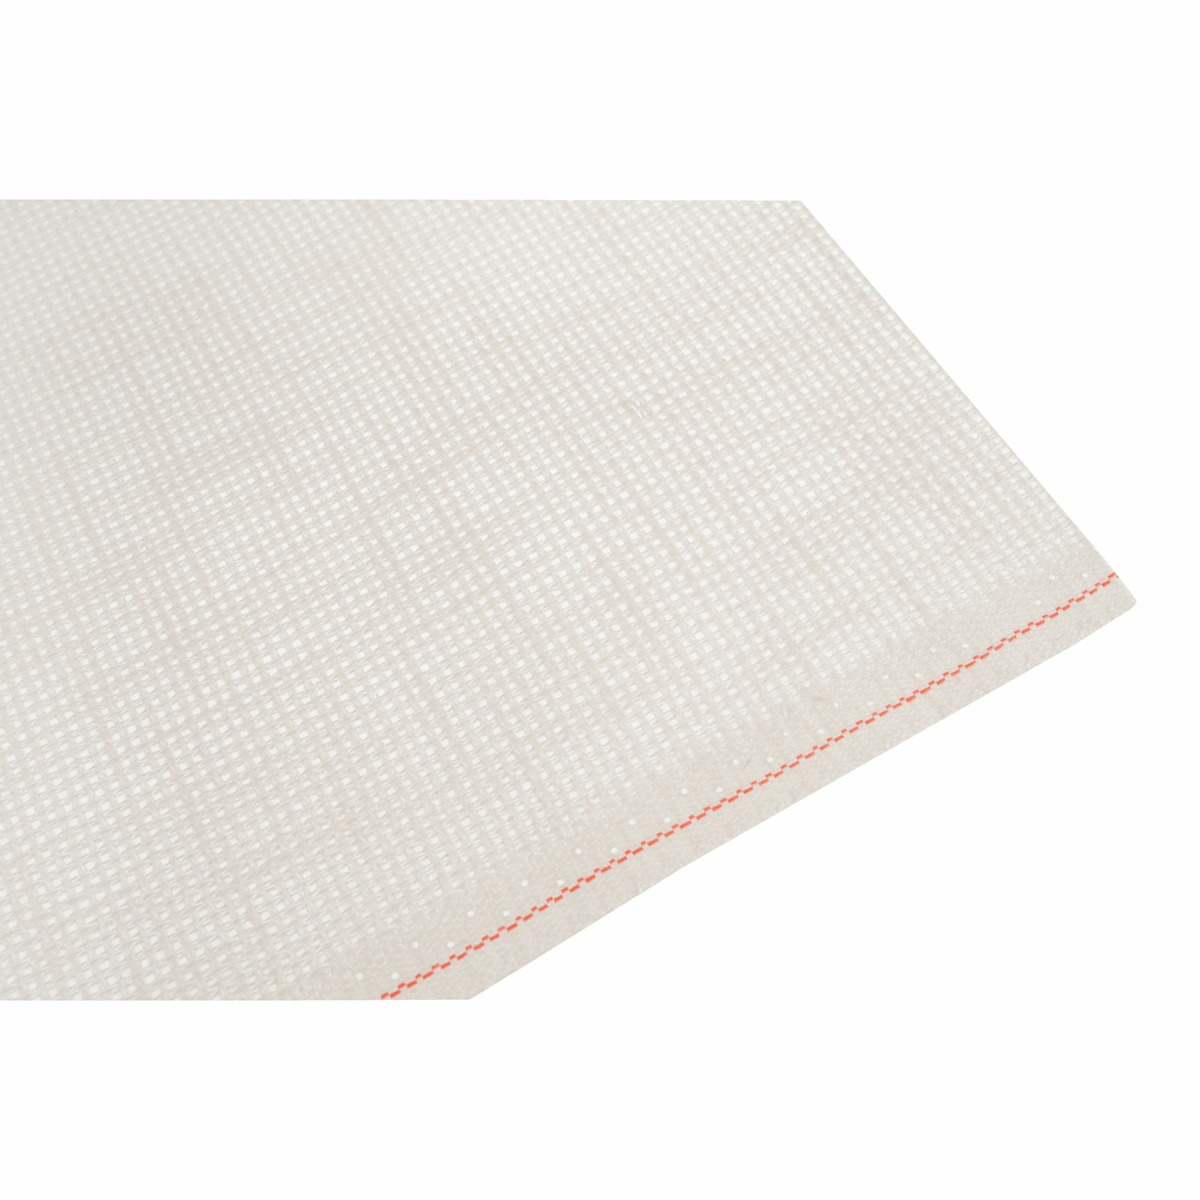 Picture of Needlecraft Fabric: Tula: 10 Count: 5m x 140cm: Natural